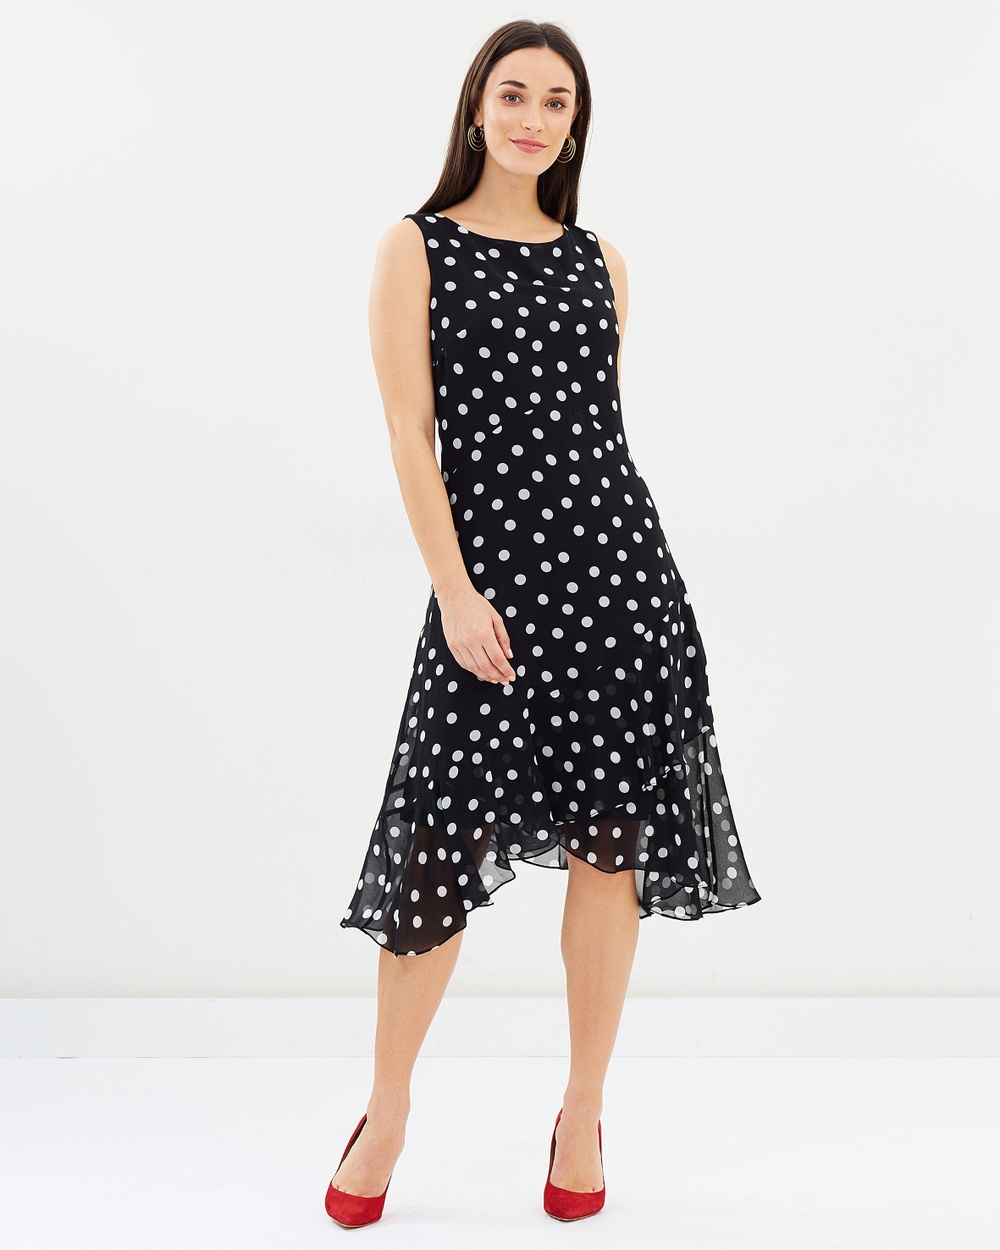 Wallis Polka Dot Ruffle Dress Printed Dresses Black Polka Dot Ruffle Dress